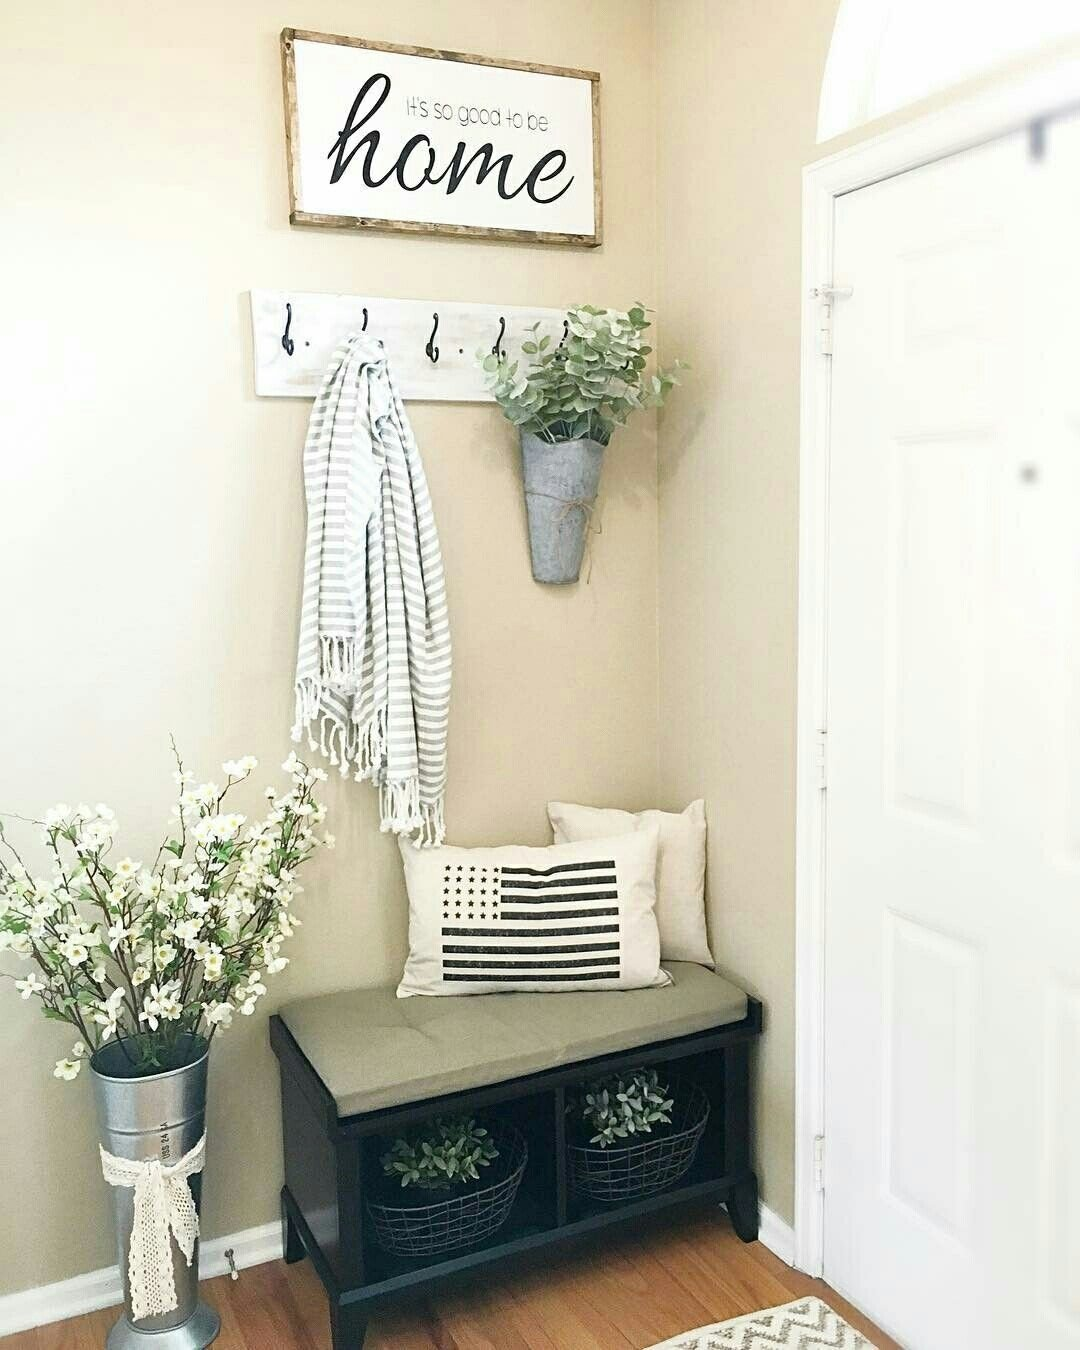 10 Most Popular Entryway Ideas For Small Spaces corner nook home decor pinterest corner nook corner and foyers 2020